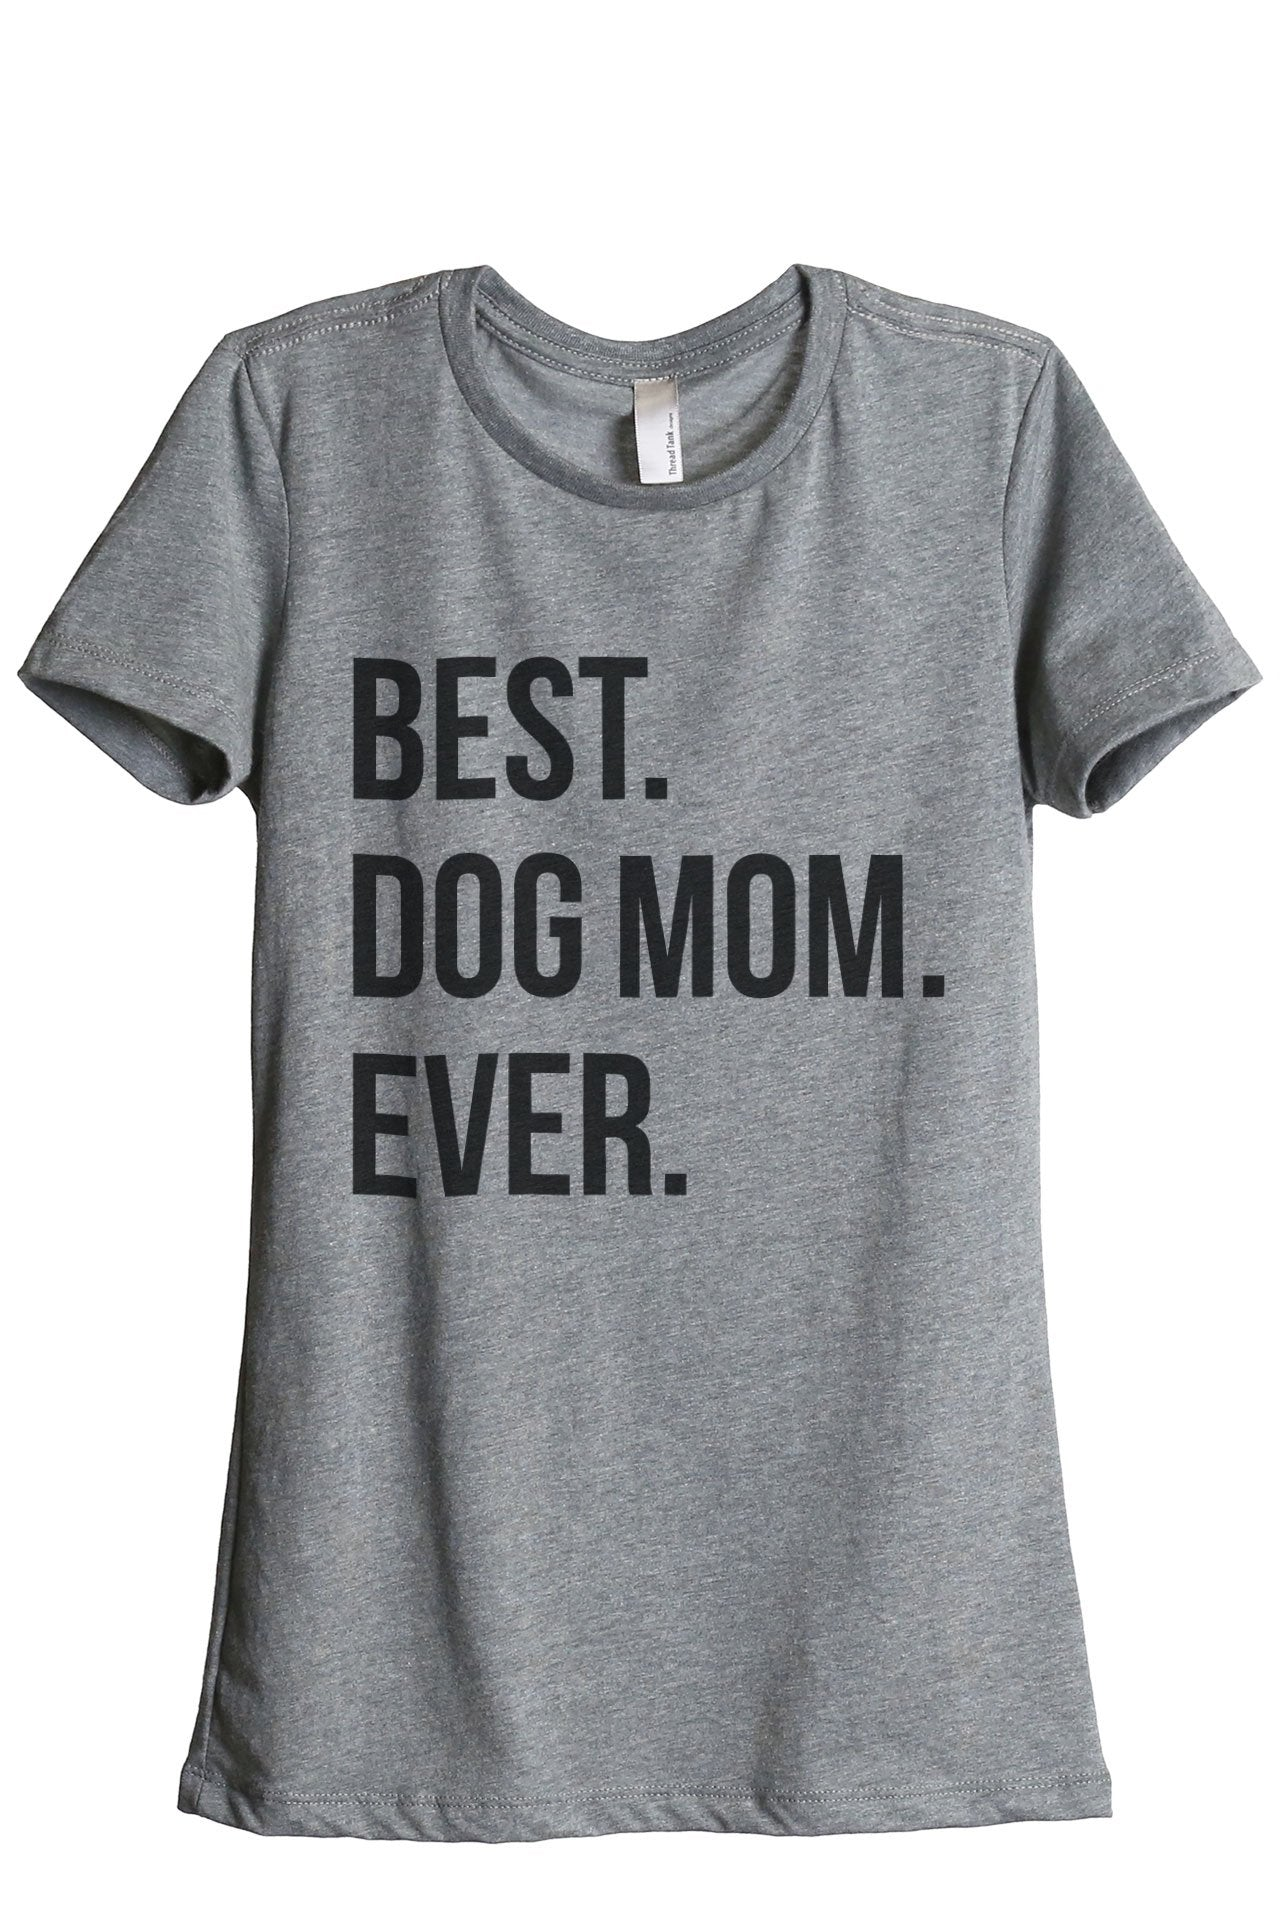 Best Dog Mom Ever - Thread Tank | Stories You Can Wear | T-Shirts, Tank Tops and Sweatshirts